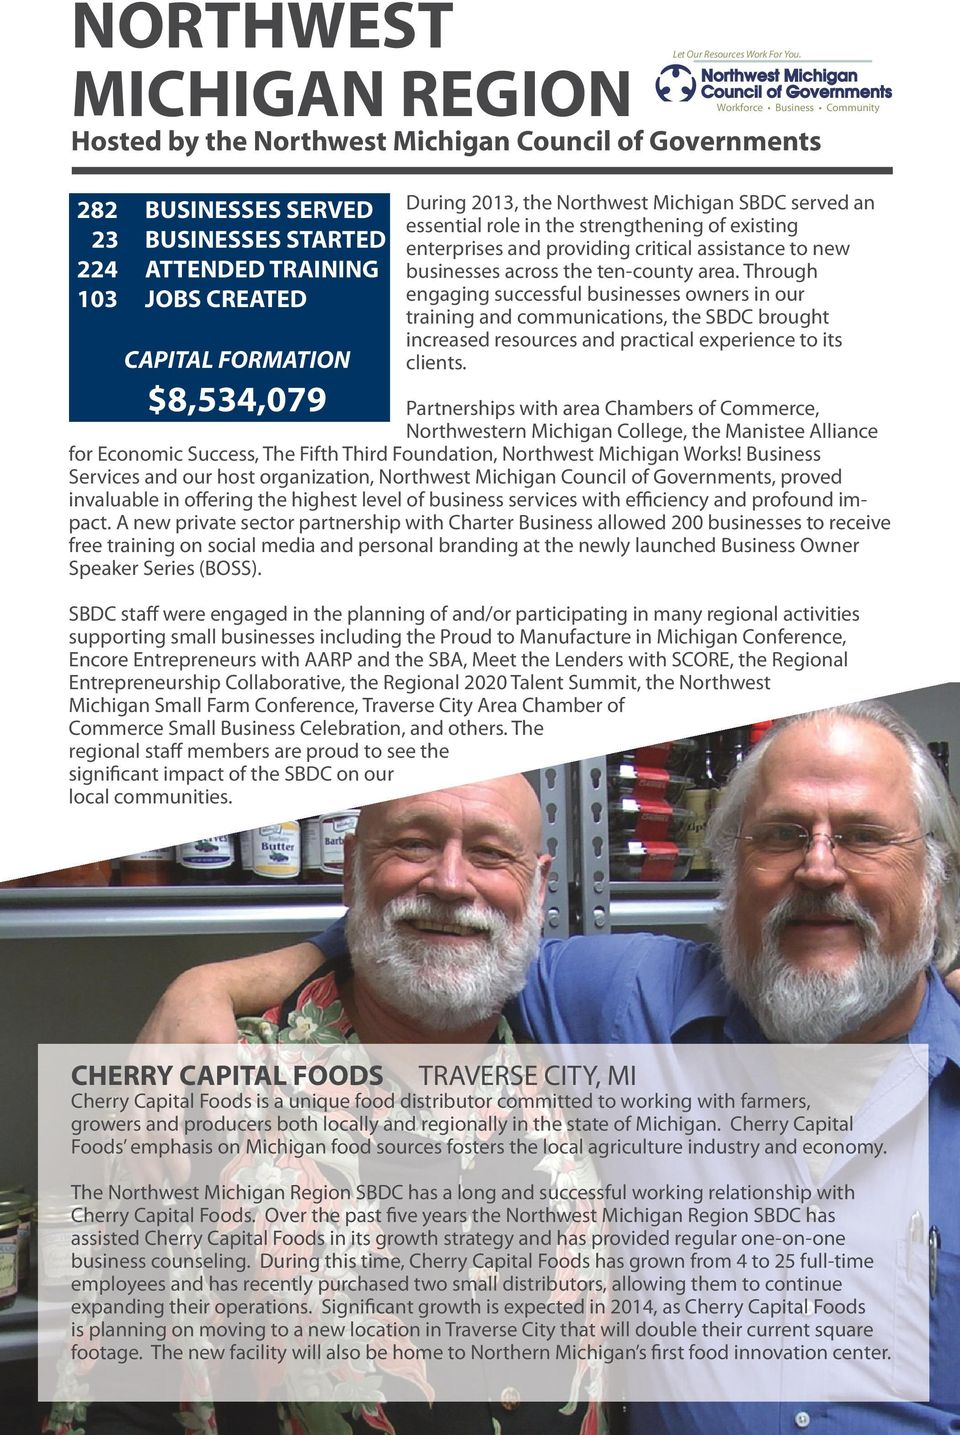 Workforce Business Community During 2013, the Northwest Michigan SBDC served an essential role in the strengthening of existing enterprises and providing critical assistance to new businesses across